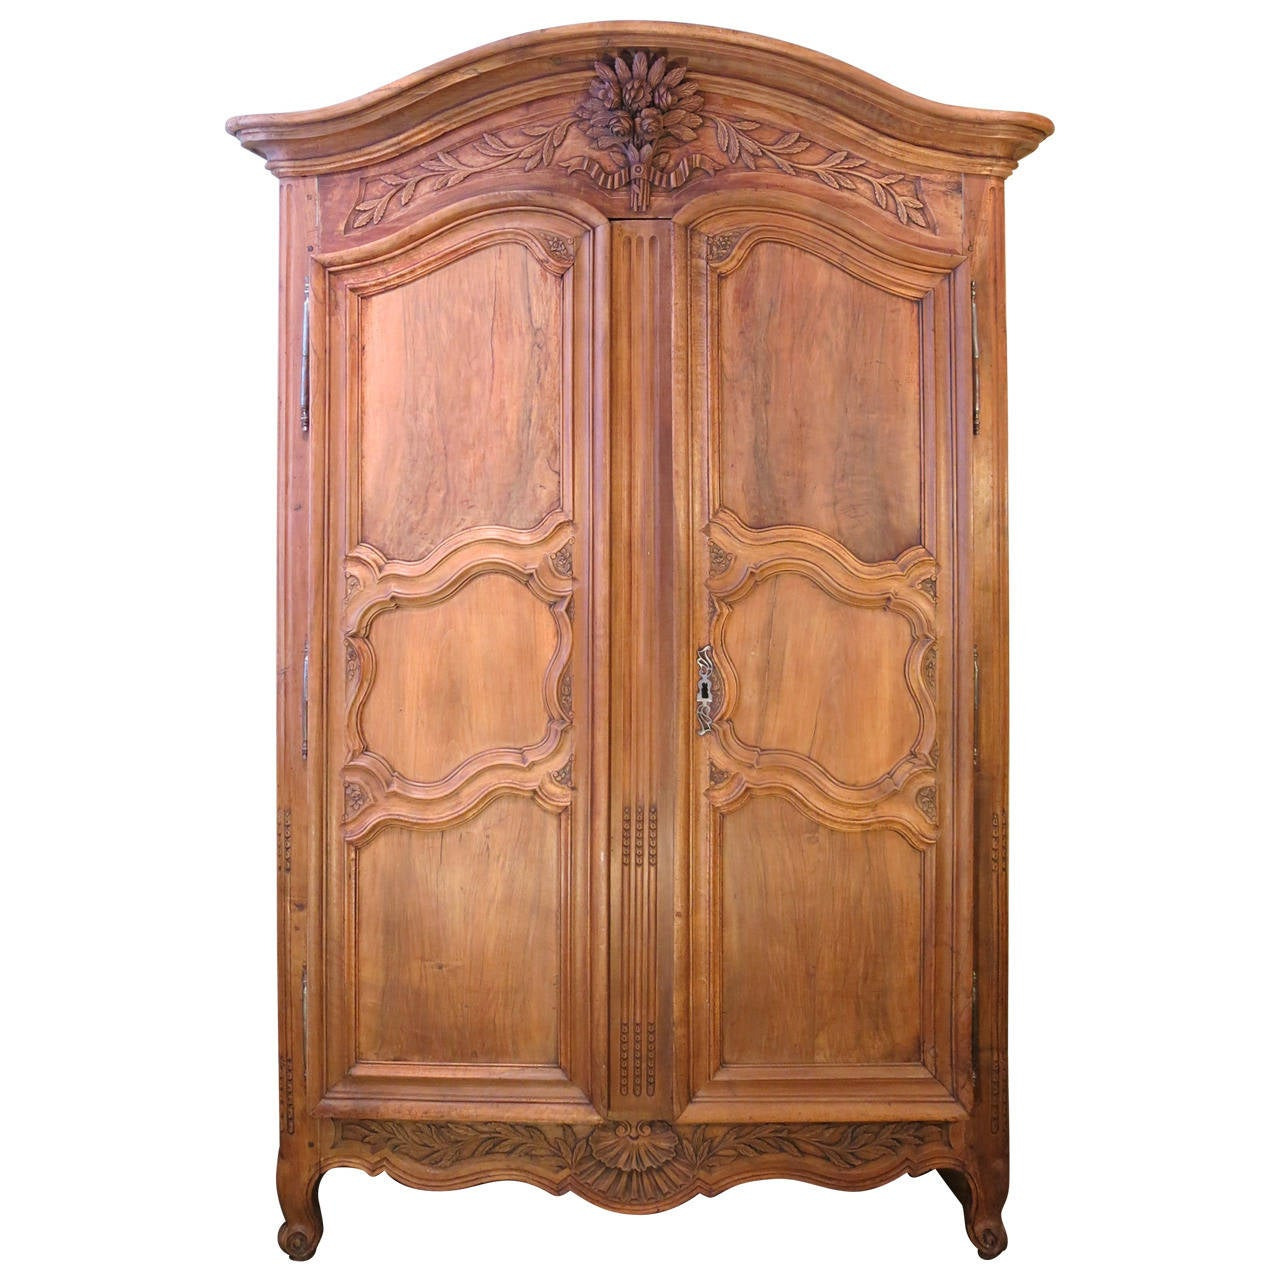 18th Century Period Regence, Louis XV Grand Walnut Armoire